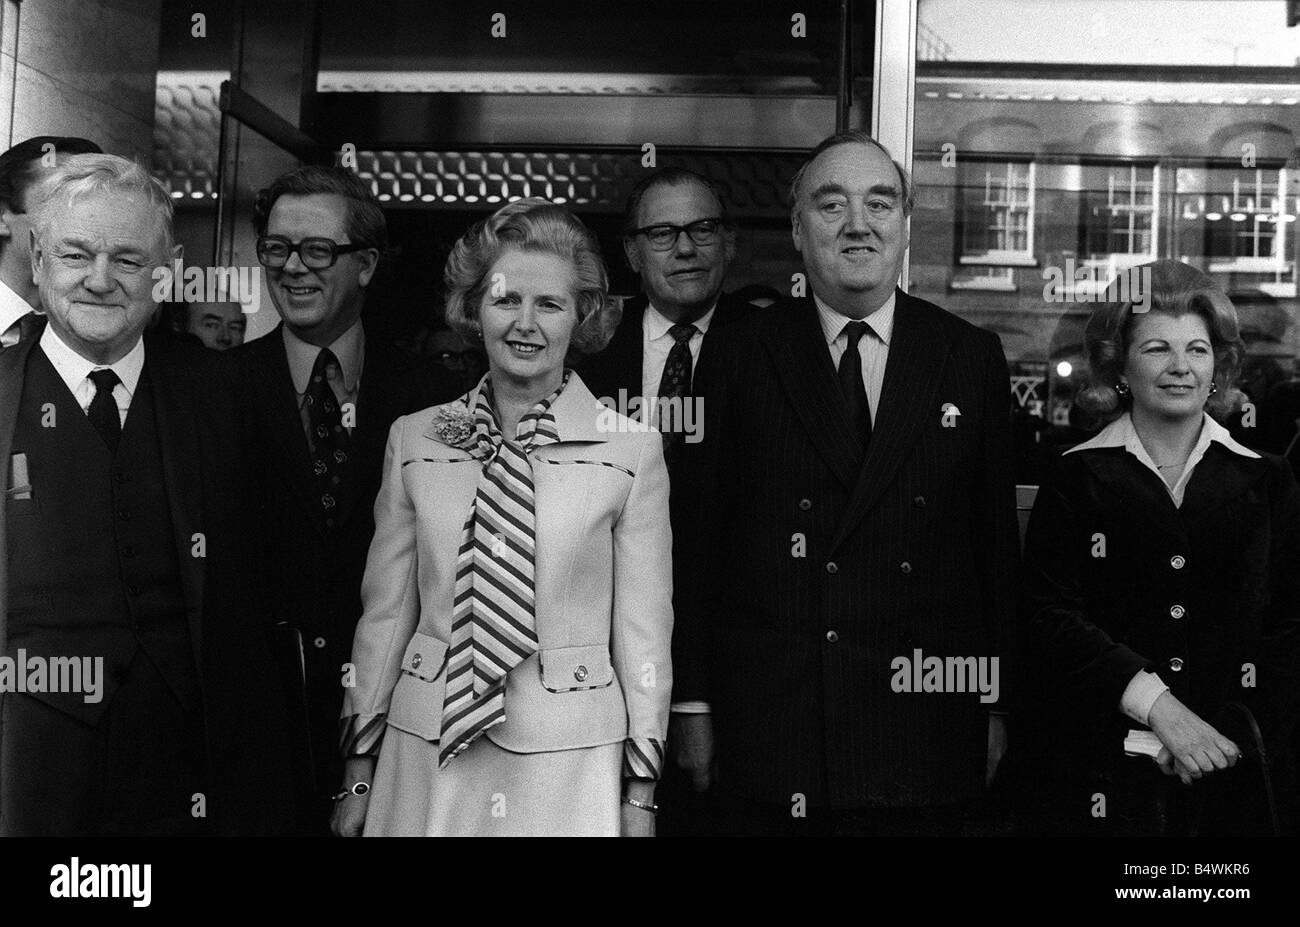 Margaret Thatcher with Reginald Maudling Sally Oppenheim William Whitelaw and Geoffrey Howe at Europa Hotel after - Stock Image